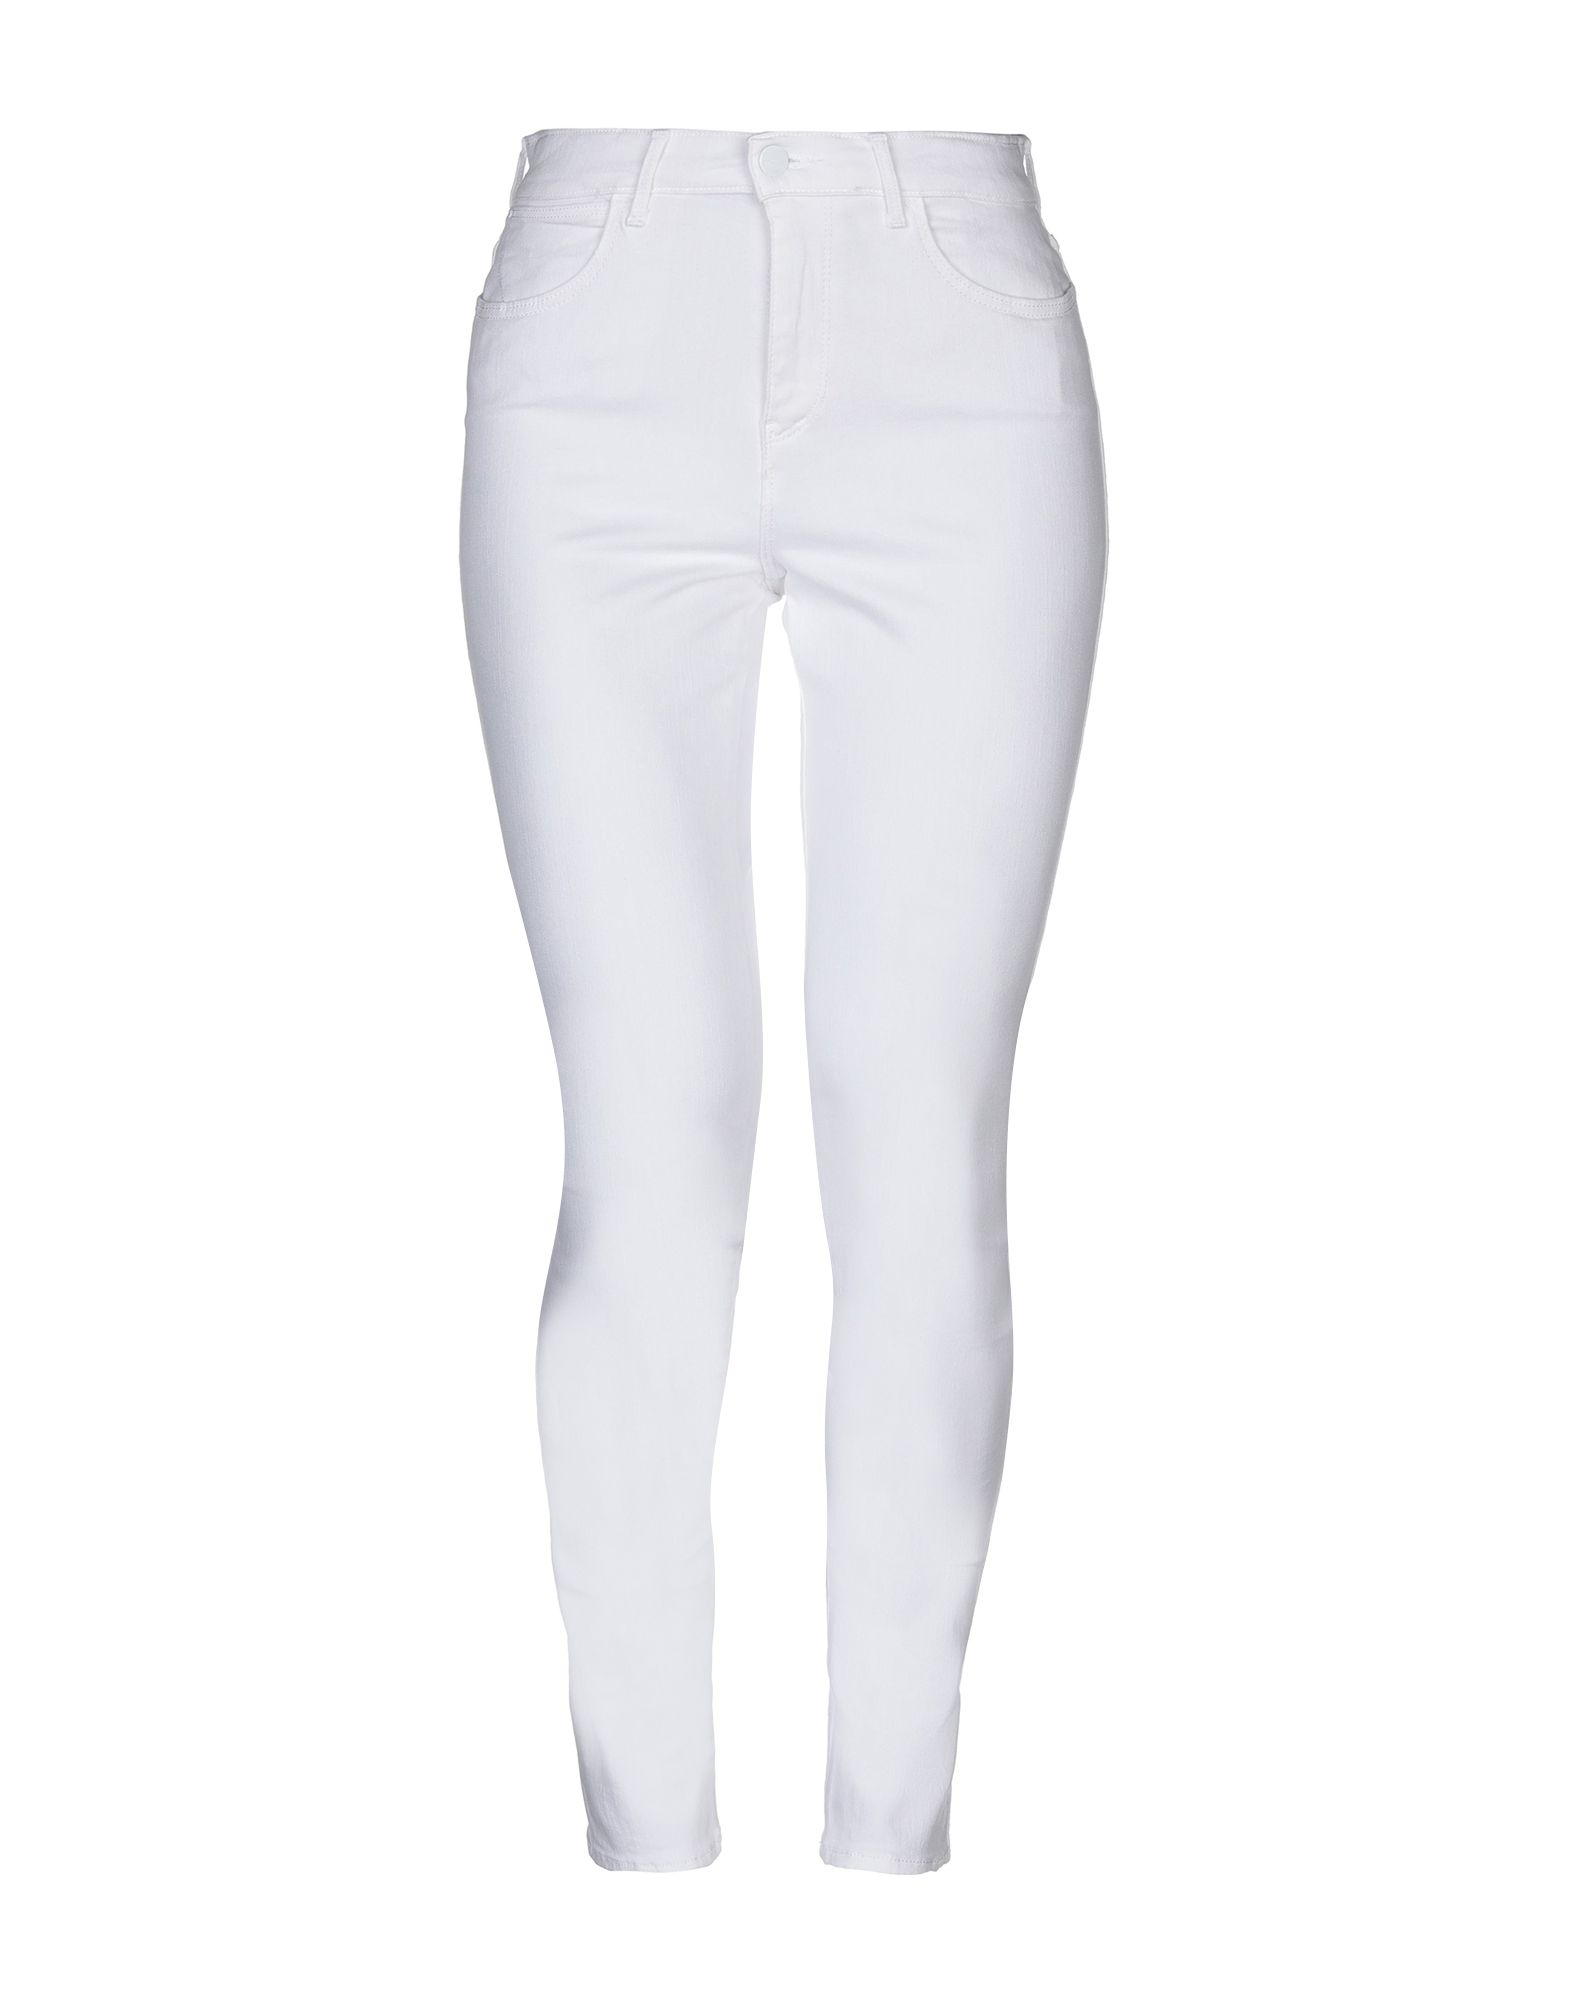 WRANGLER Джинсовые брюки white high waist skinny jeans with ripped detailing